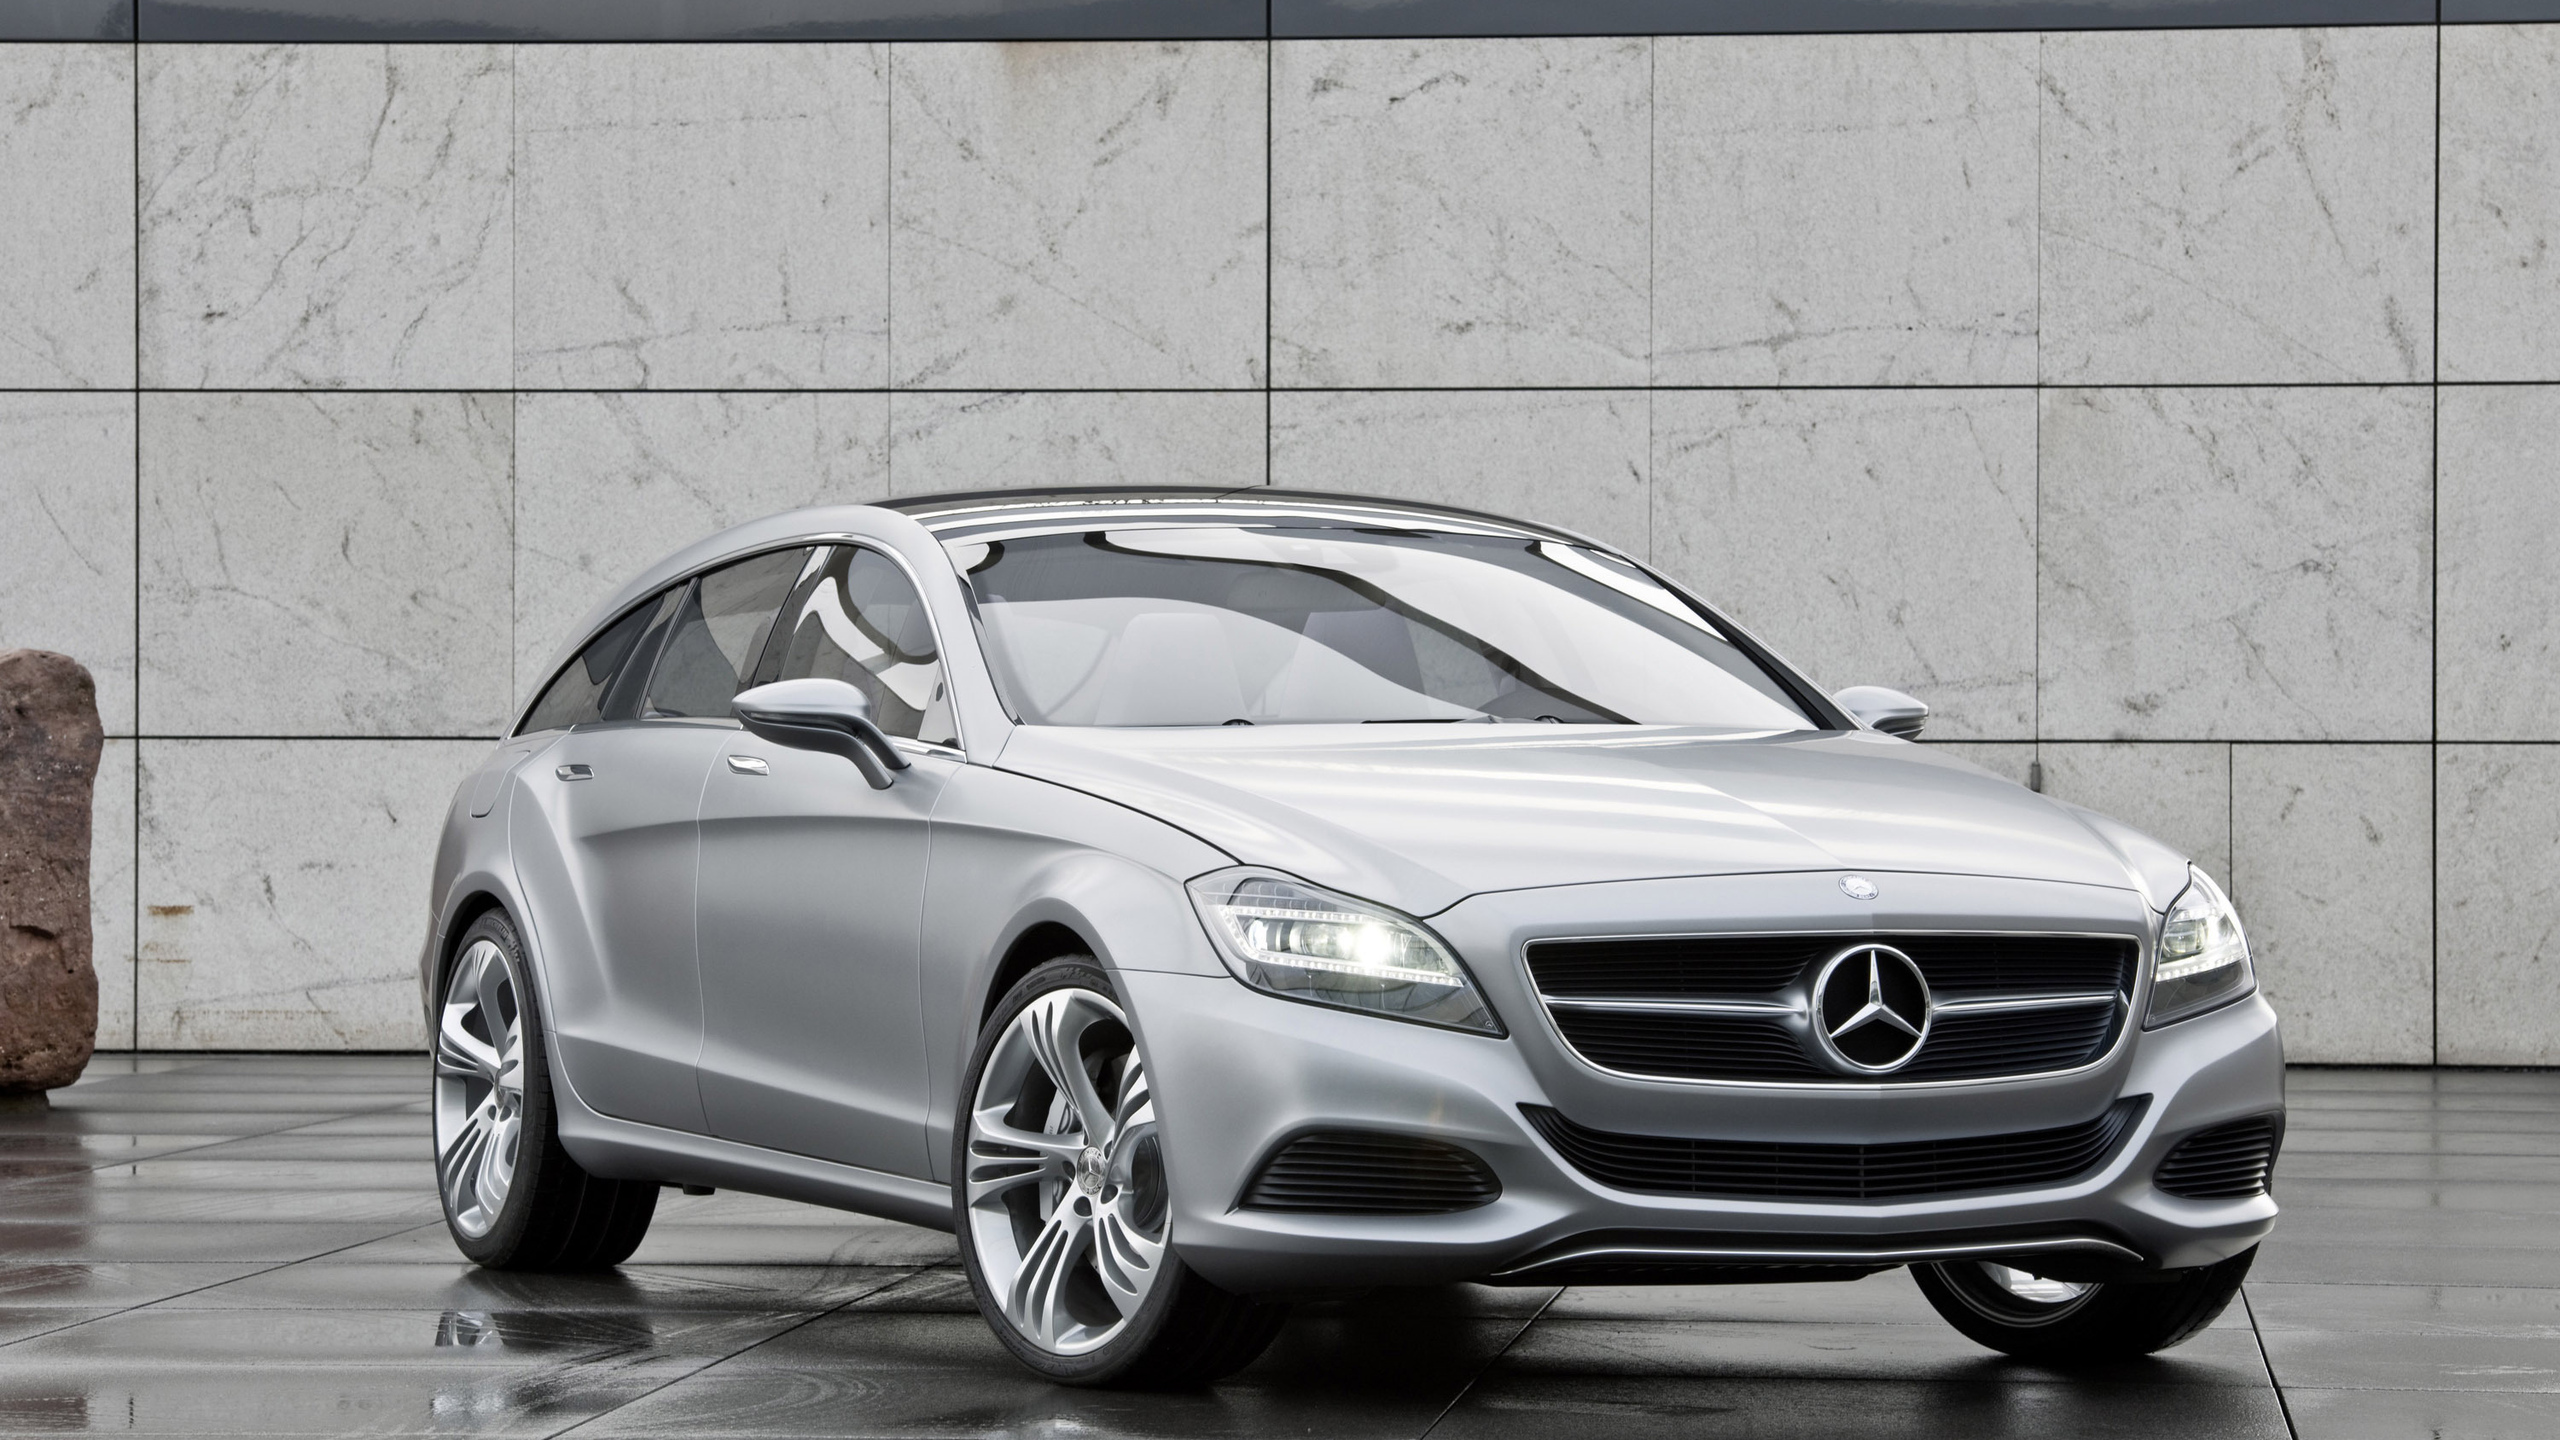 mercedes-benz cls shooting break concept, машина, car